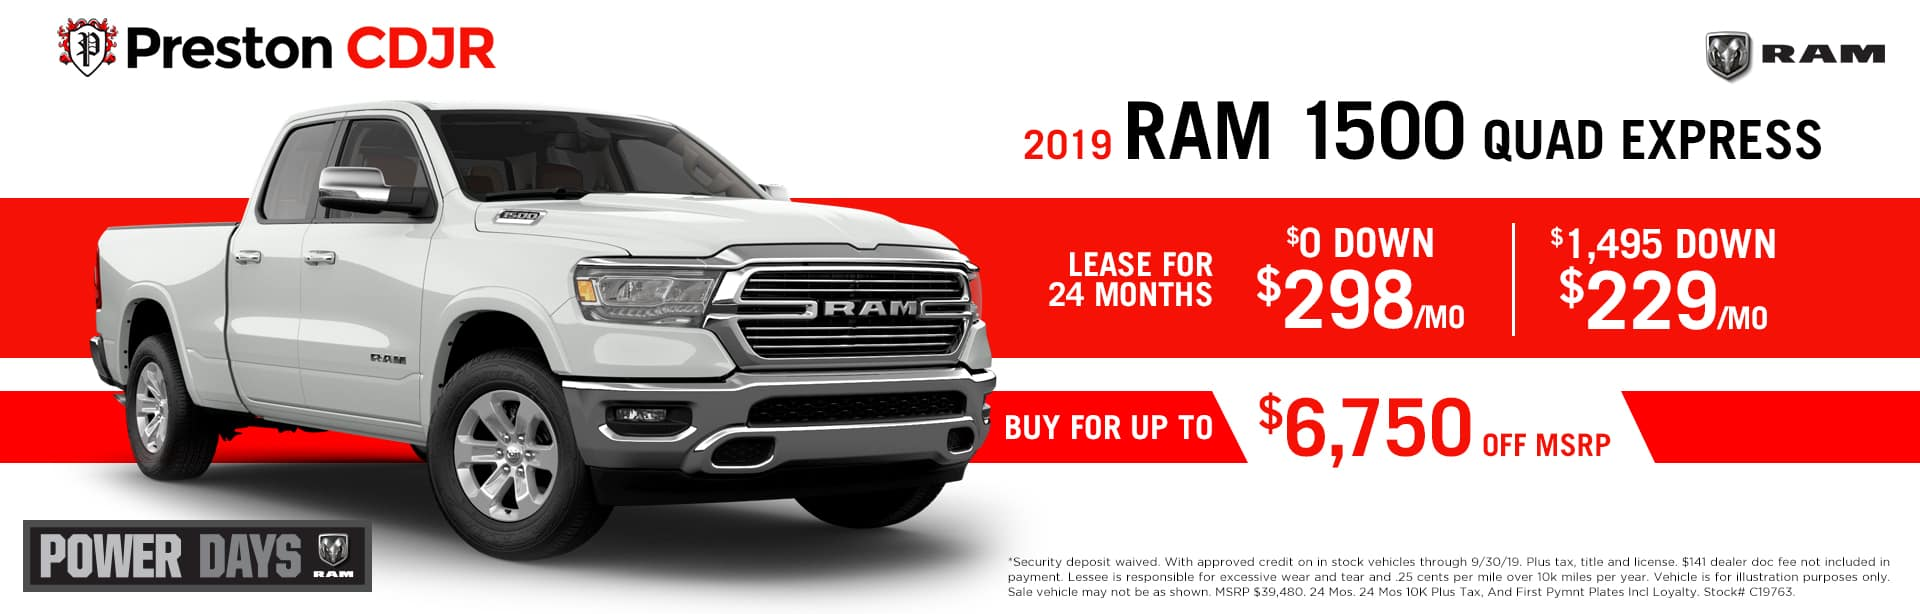 September special on the 2019 RAM 1500